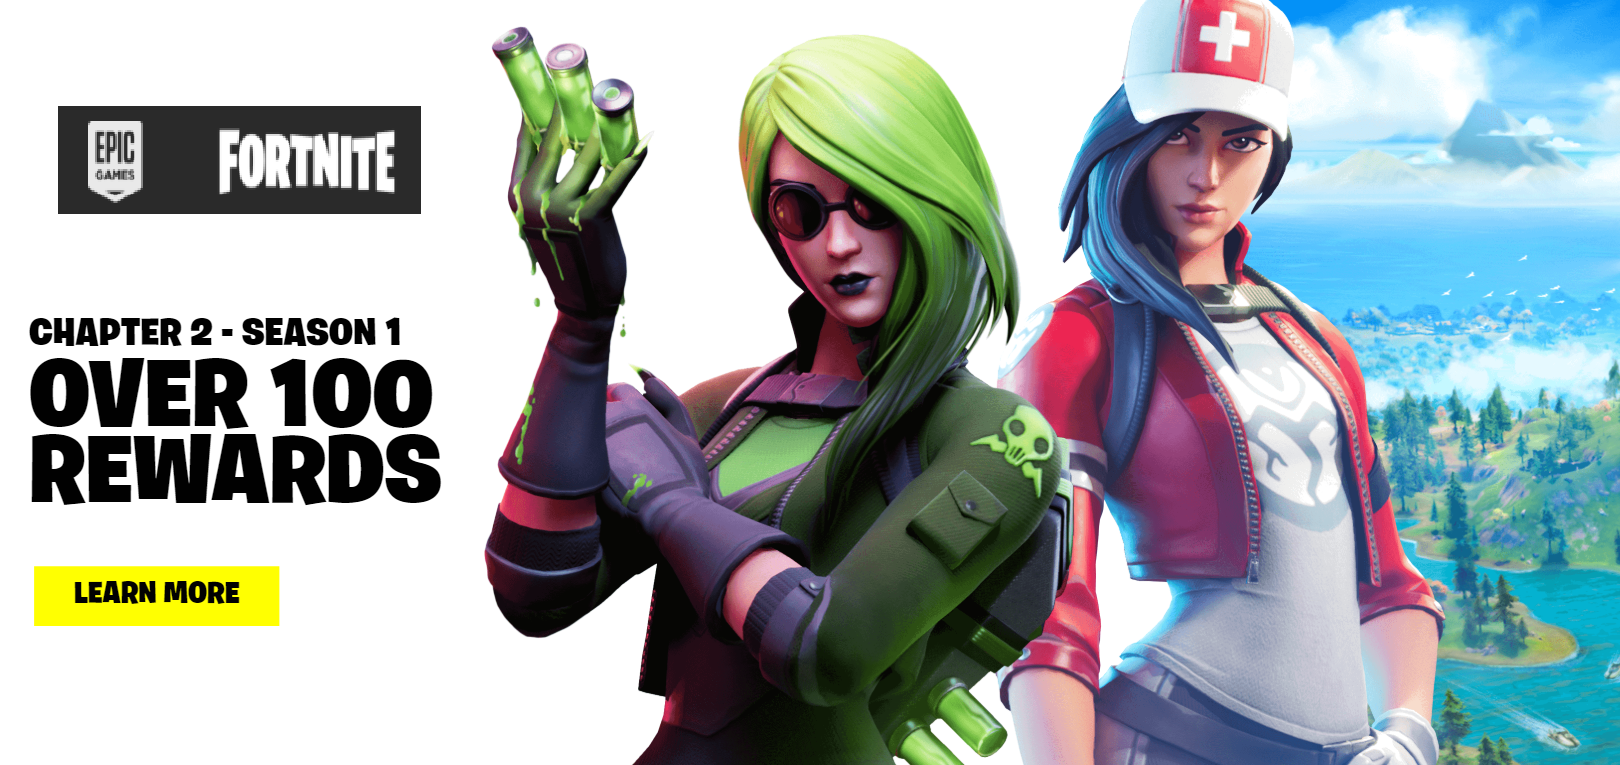 Fortnite Help Epic Games fortnite installer has become the new 'epic games' app